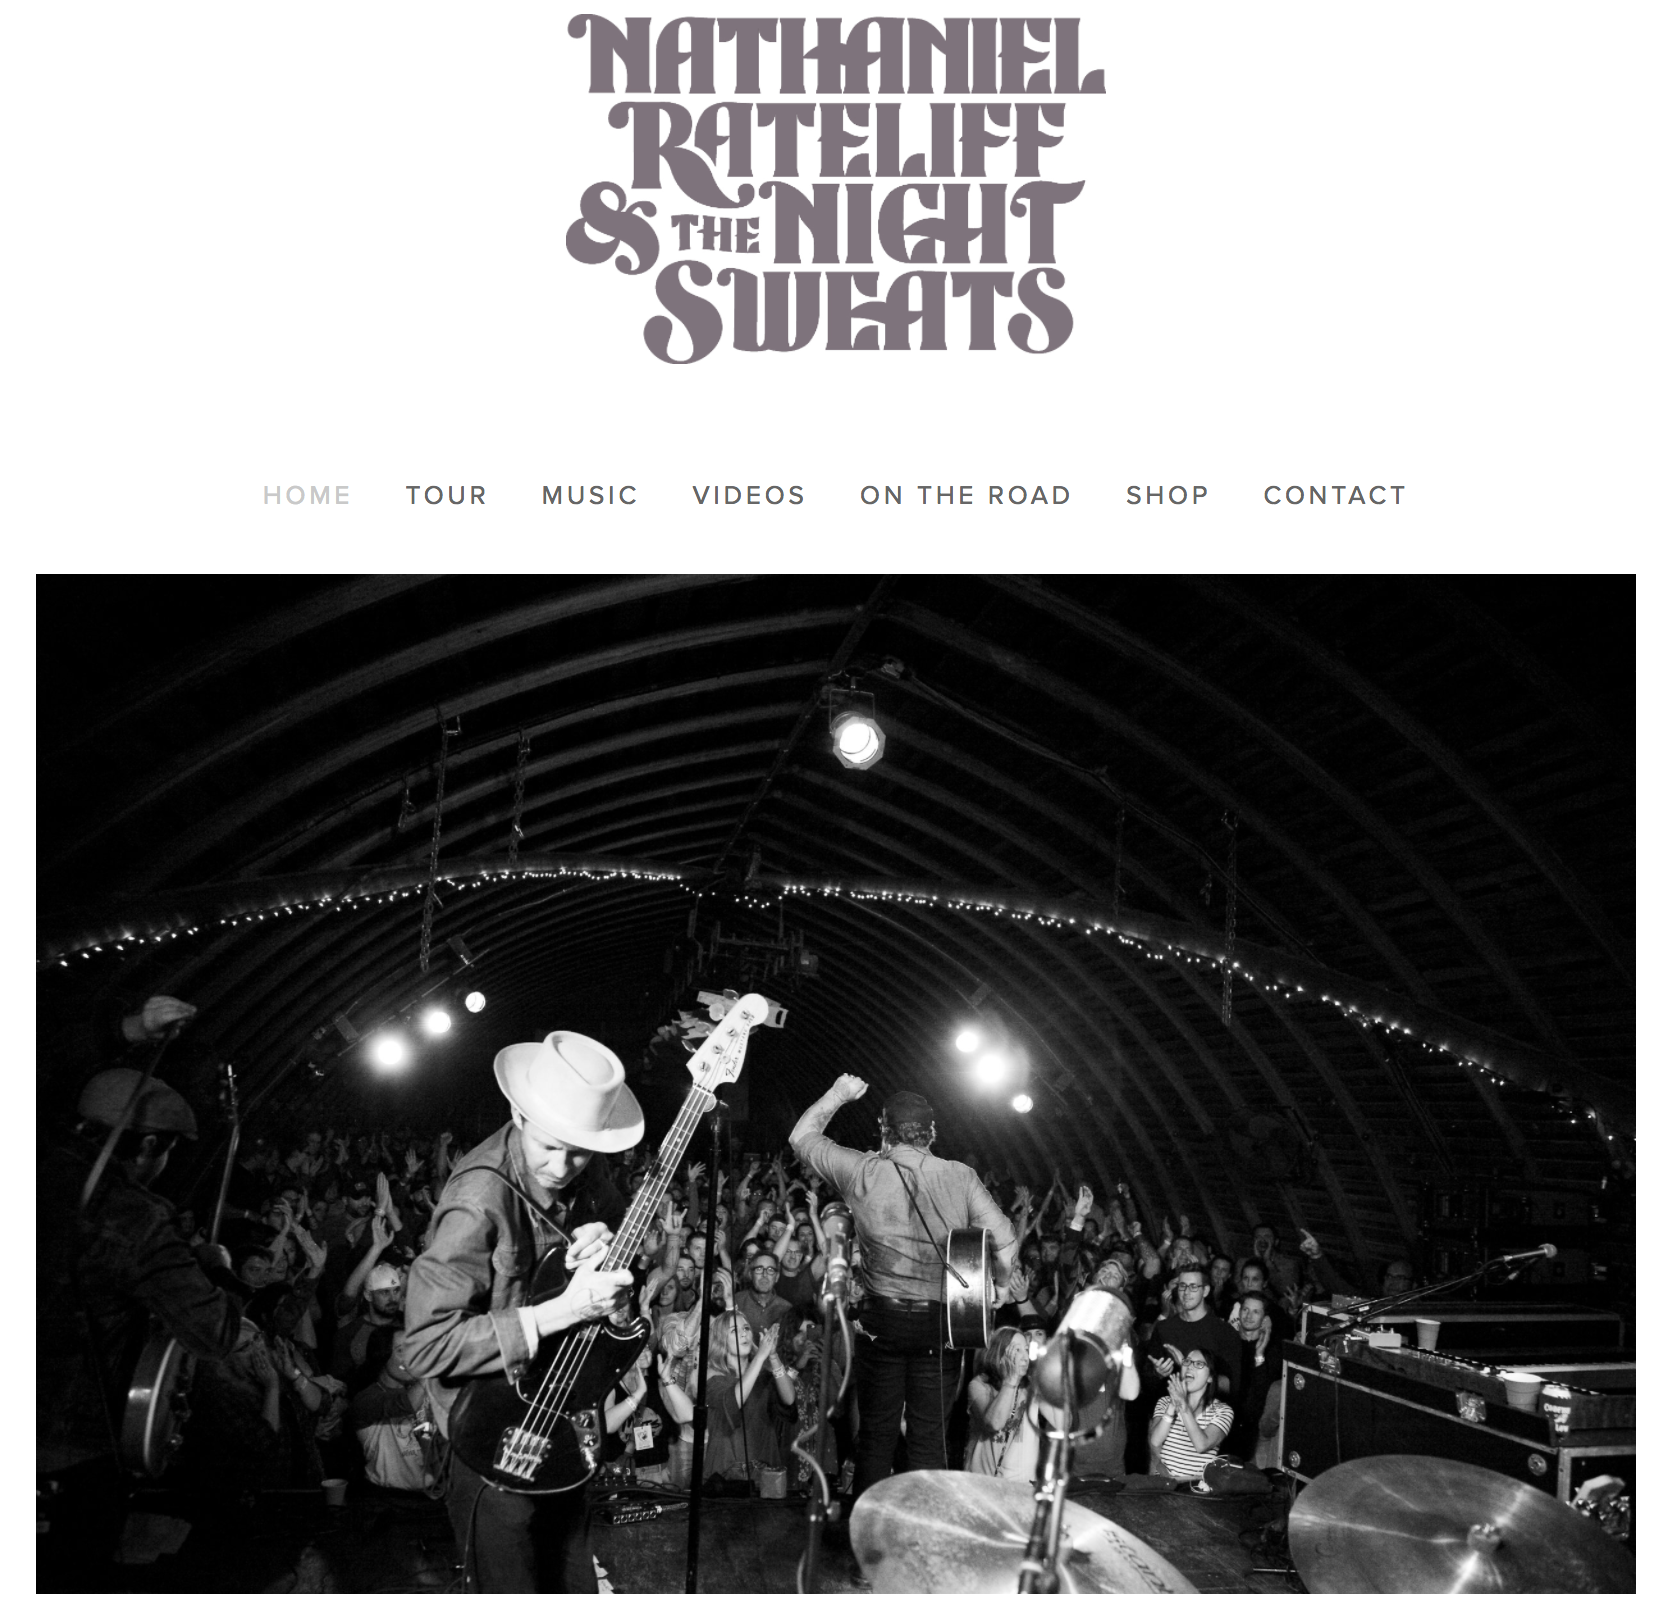 Image taken from  www.nathanielrateliff.com